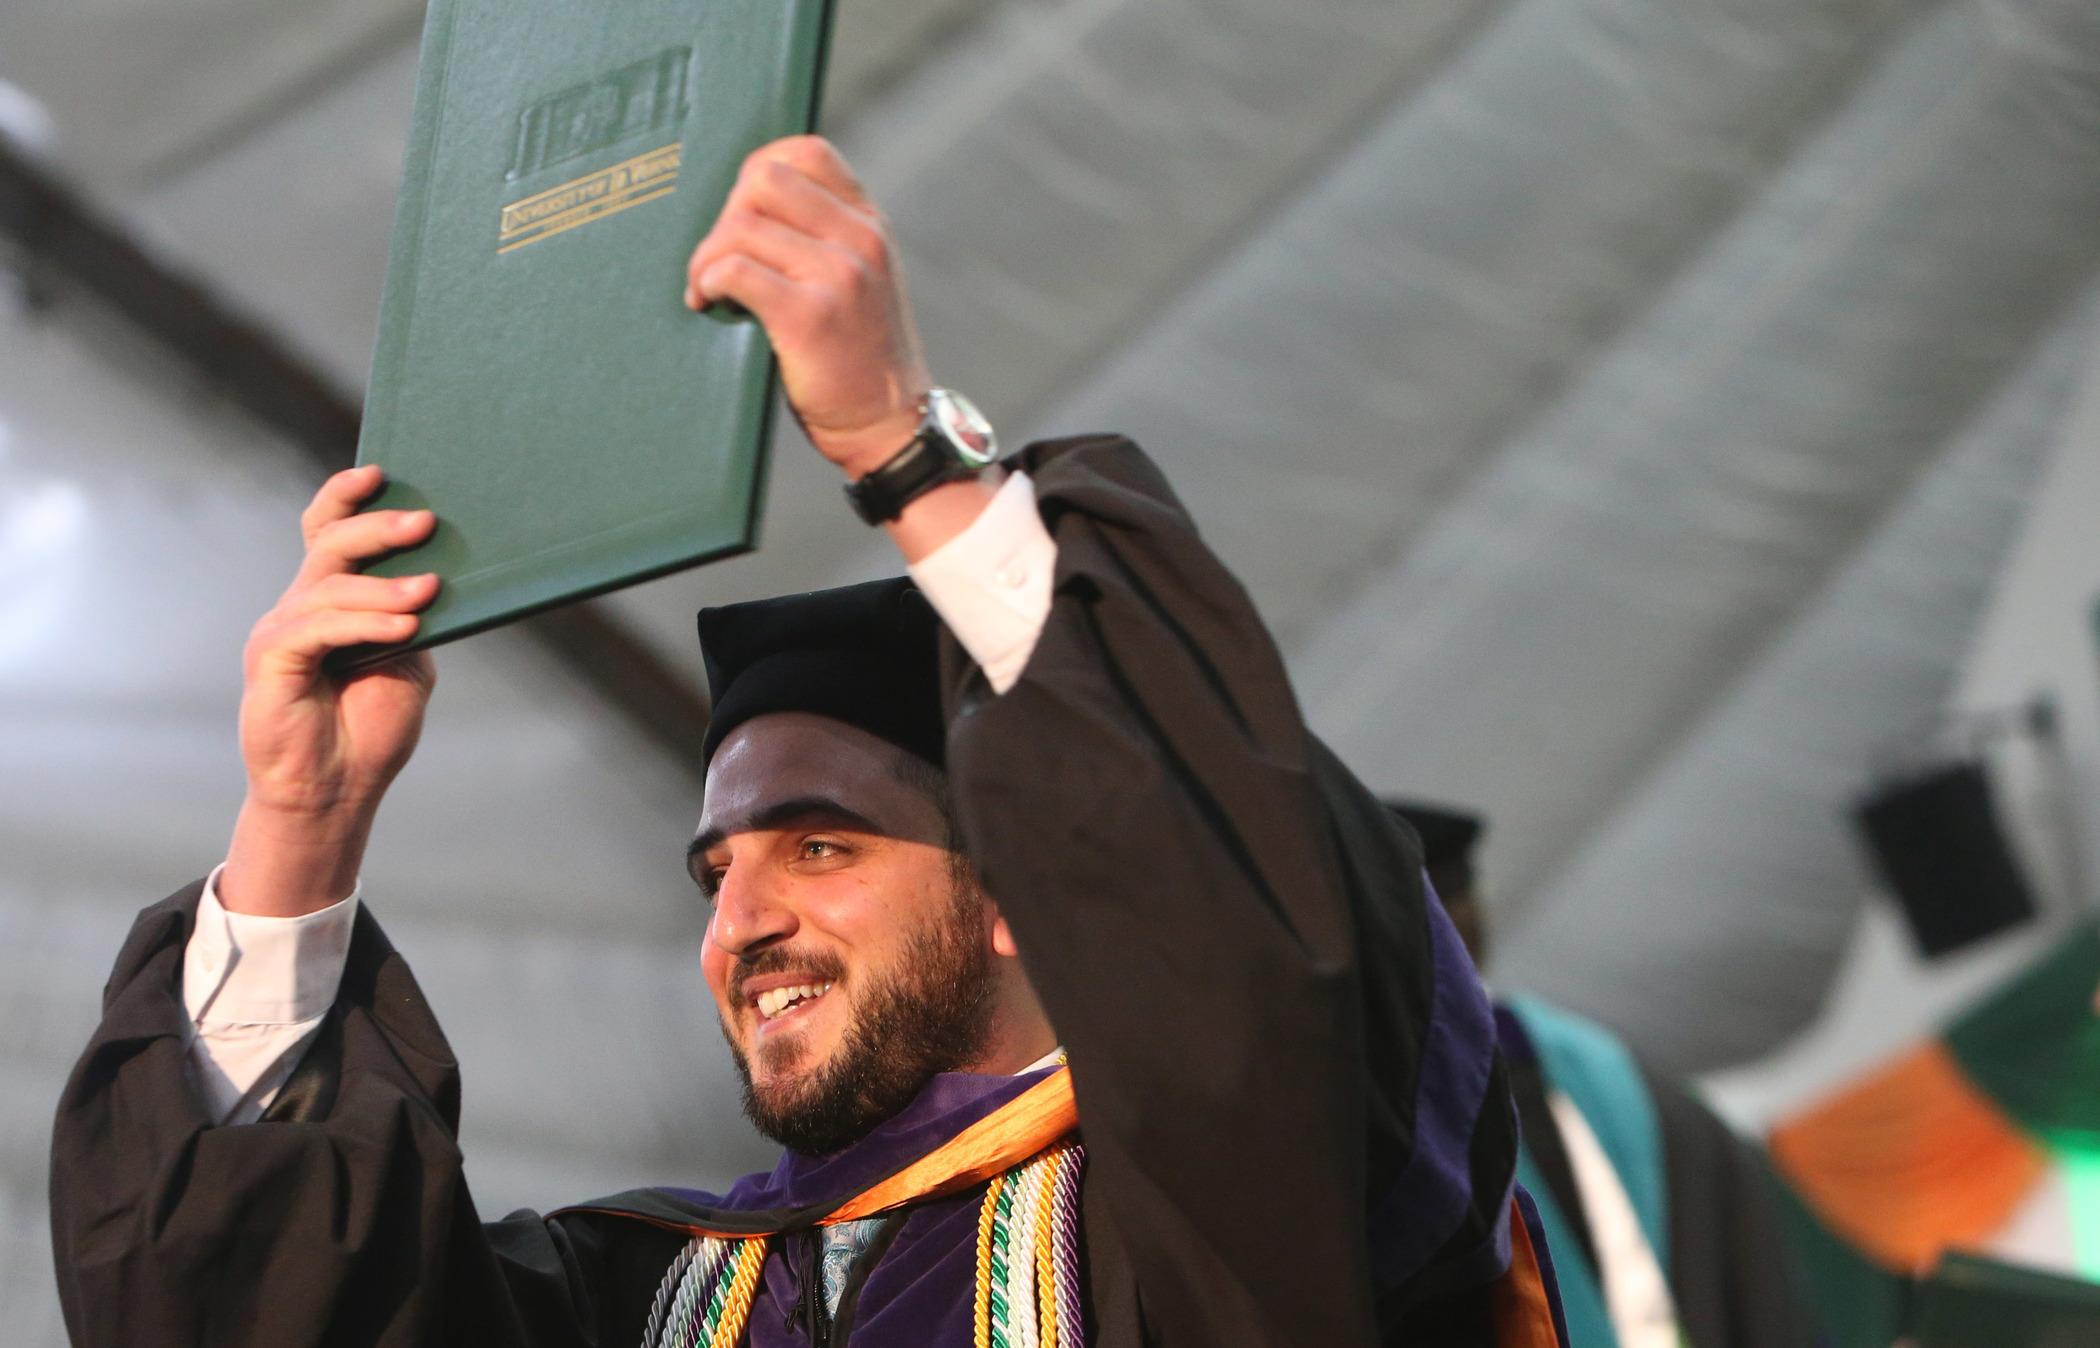 A College of Law graduate smiles onstage